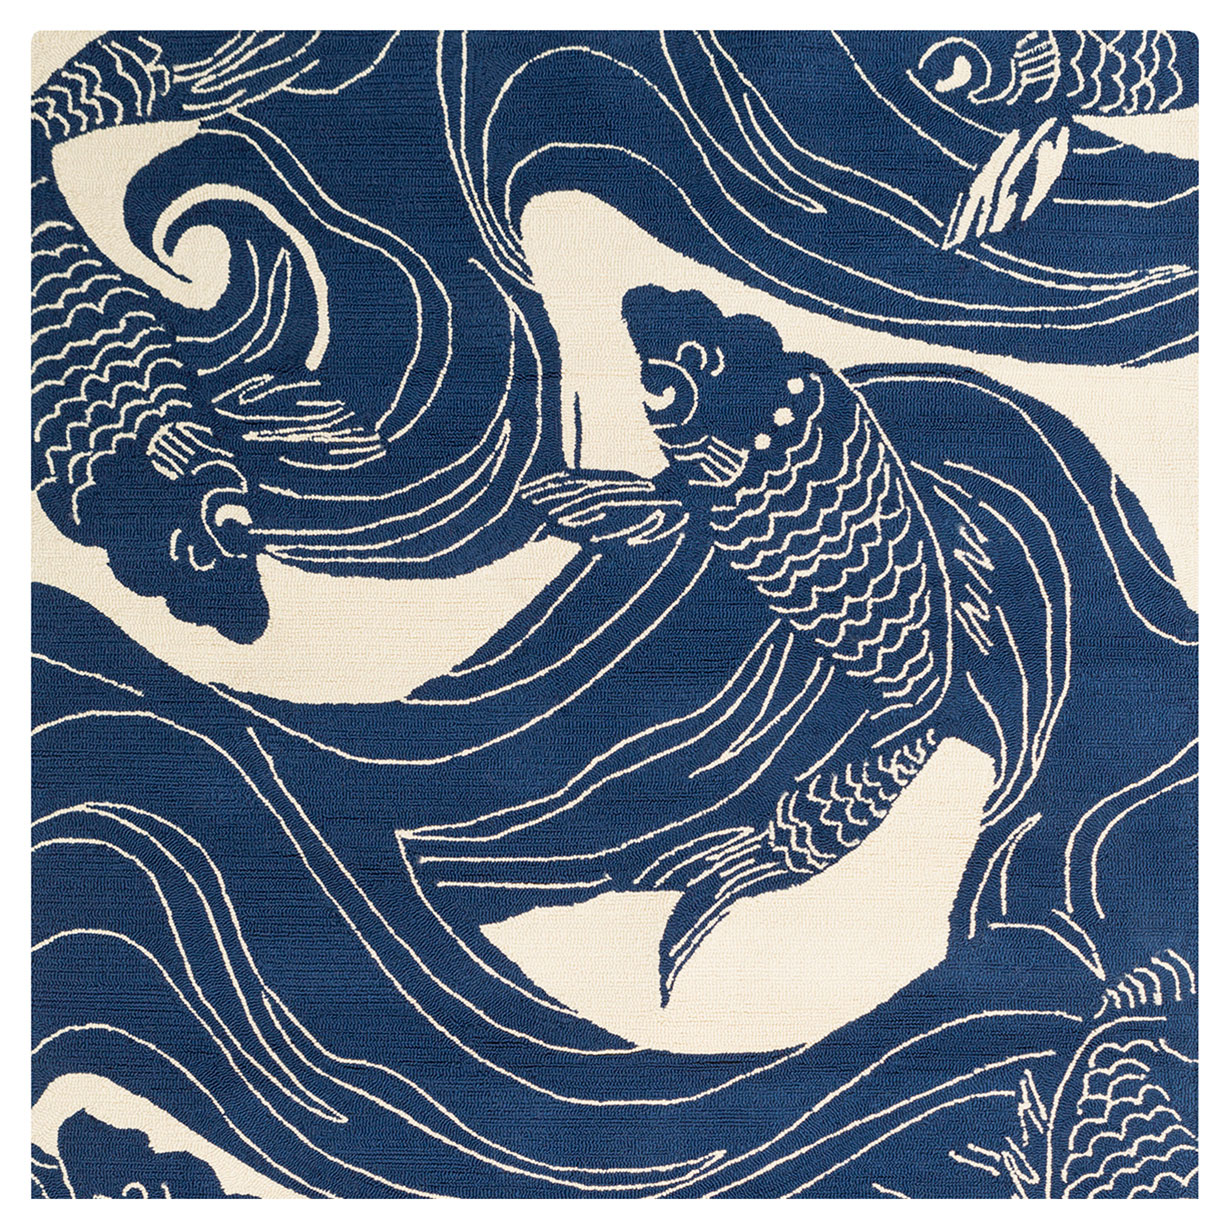 Kana Global Coastal Blue Ocean Koi Outdoor Rug - Sample